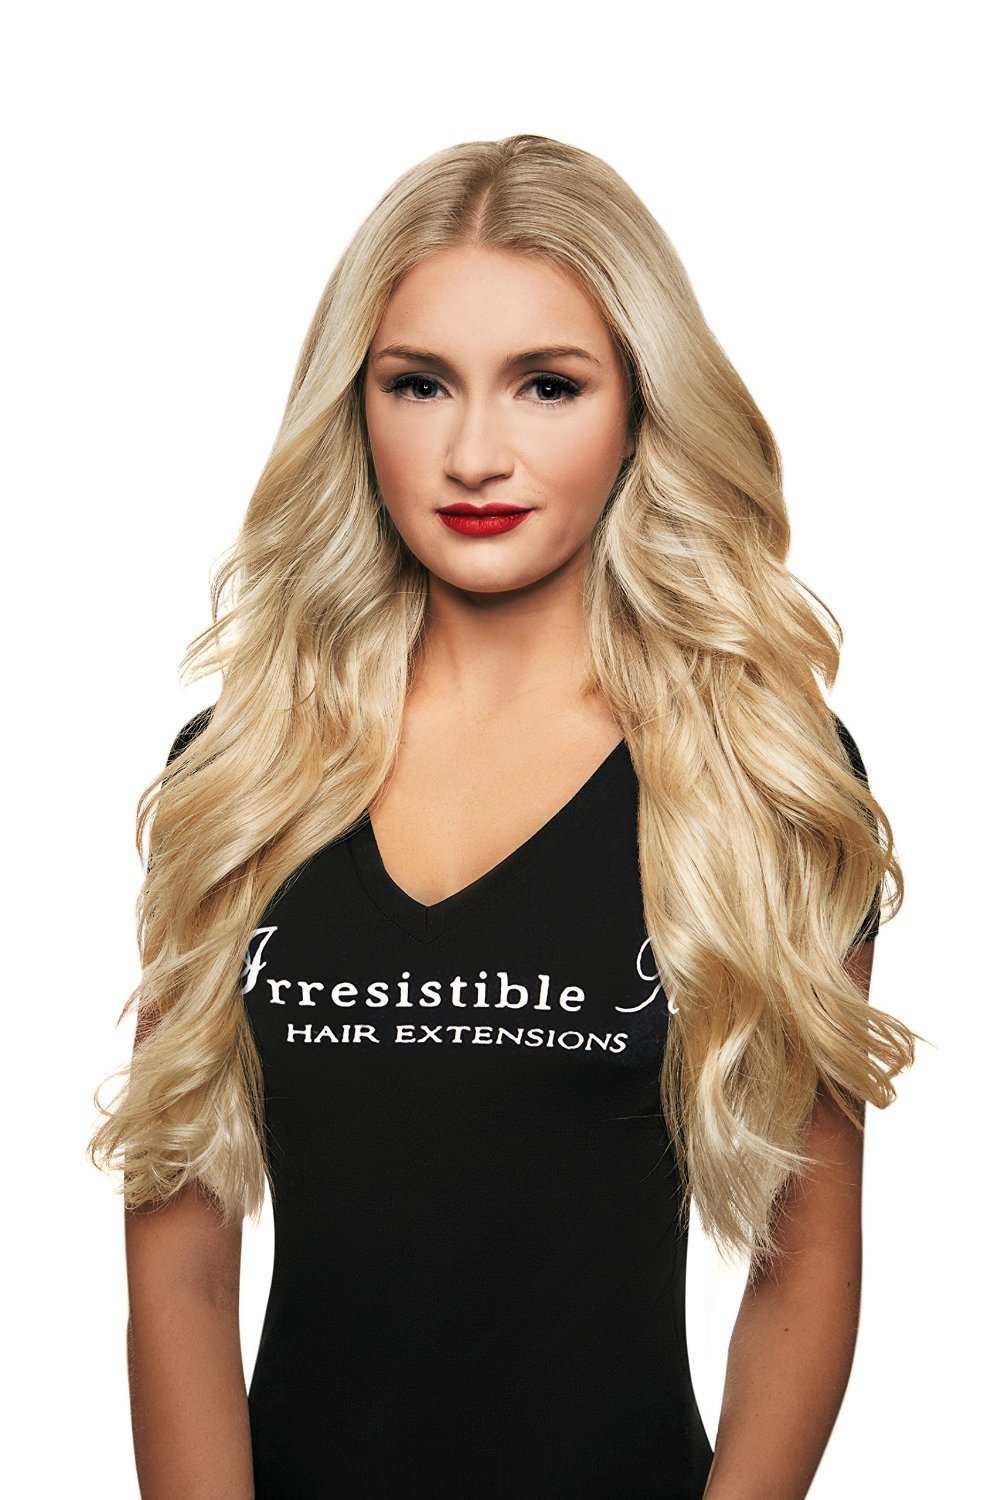 Amazon irresistible me clip in hair extensions platinum amazon irresistible me clip in hair extensions platinum blonde color 613 100 natural remy remi human real hair straight silky touch pmusecretfo Image collections